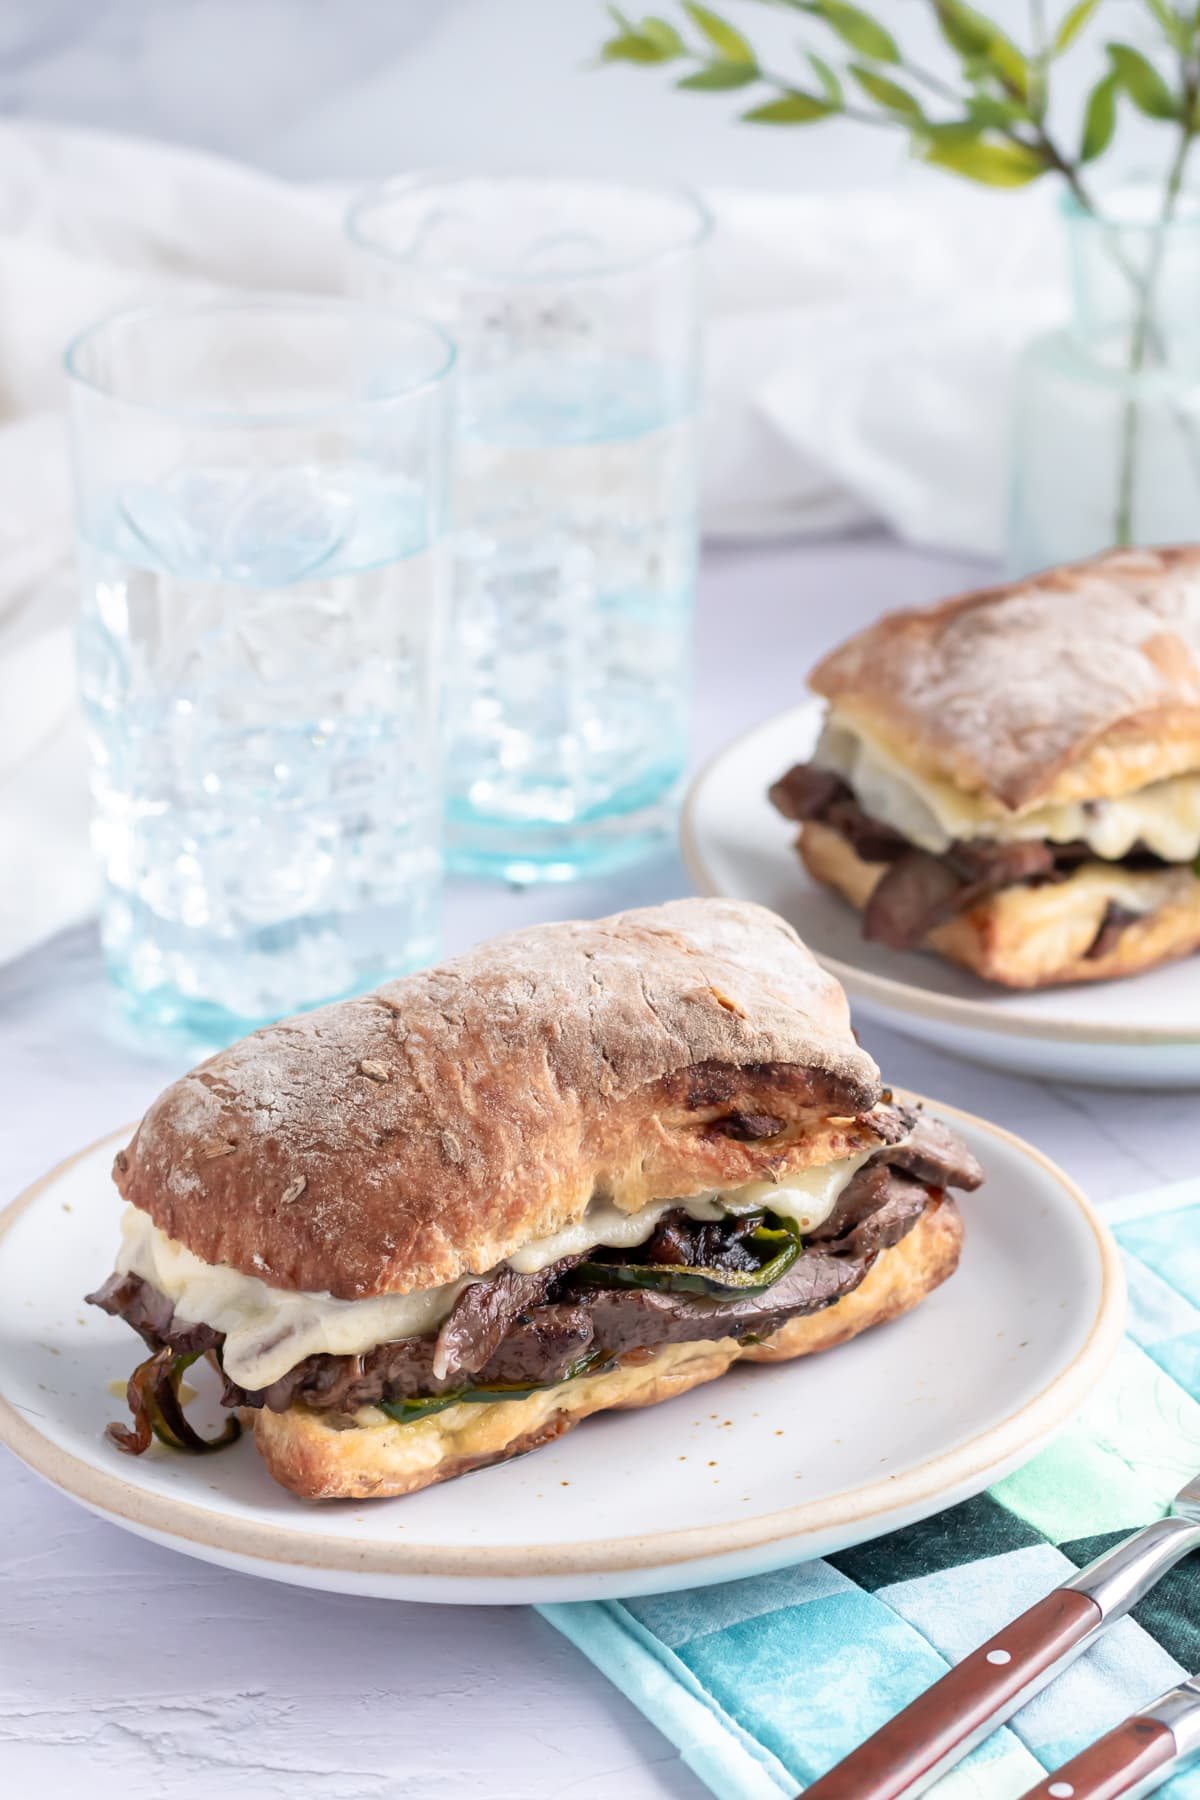 two halves of a cheesesteak sandwich on a small plate on top of two napkins. another cheesesteak sandwich sits on a plate behind it along with some glasses of water and a newspaper.